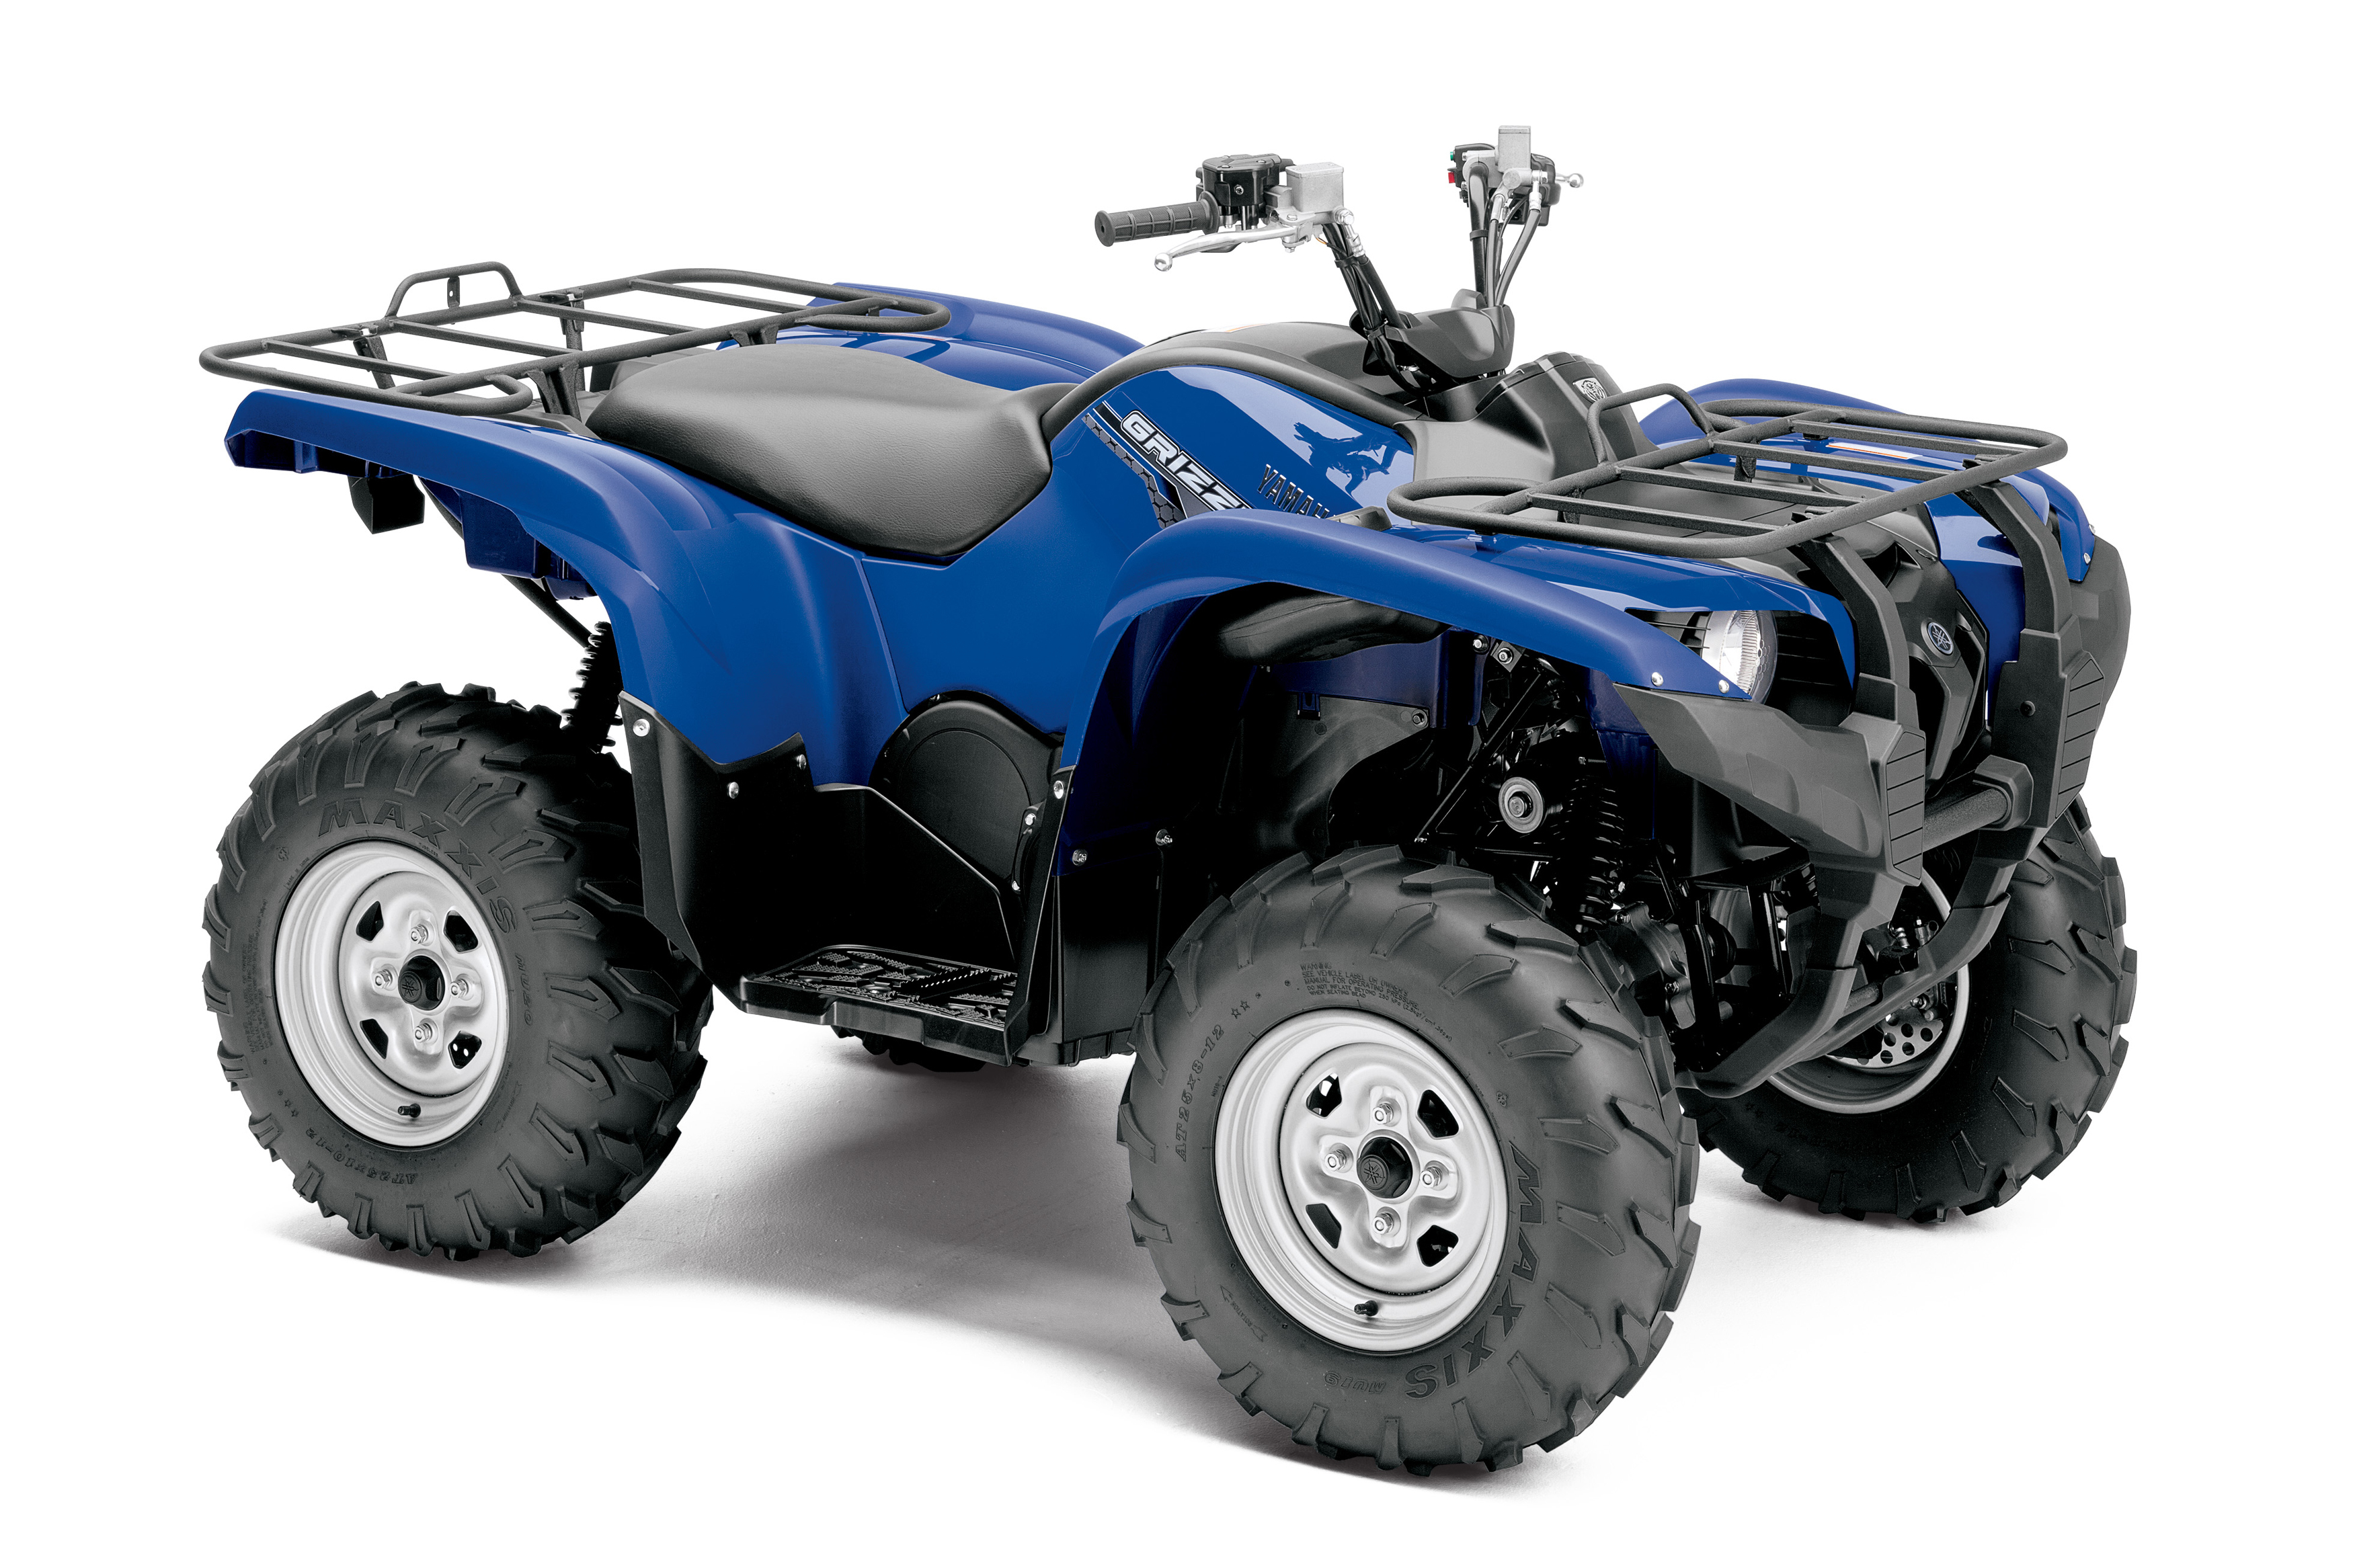 New Grizzly 700 Gets Wider Chis Updated Electric Steering Improved Comfort And Greater Fuel Efficiency Business Wire